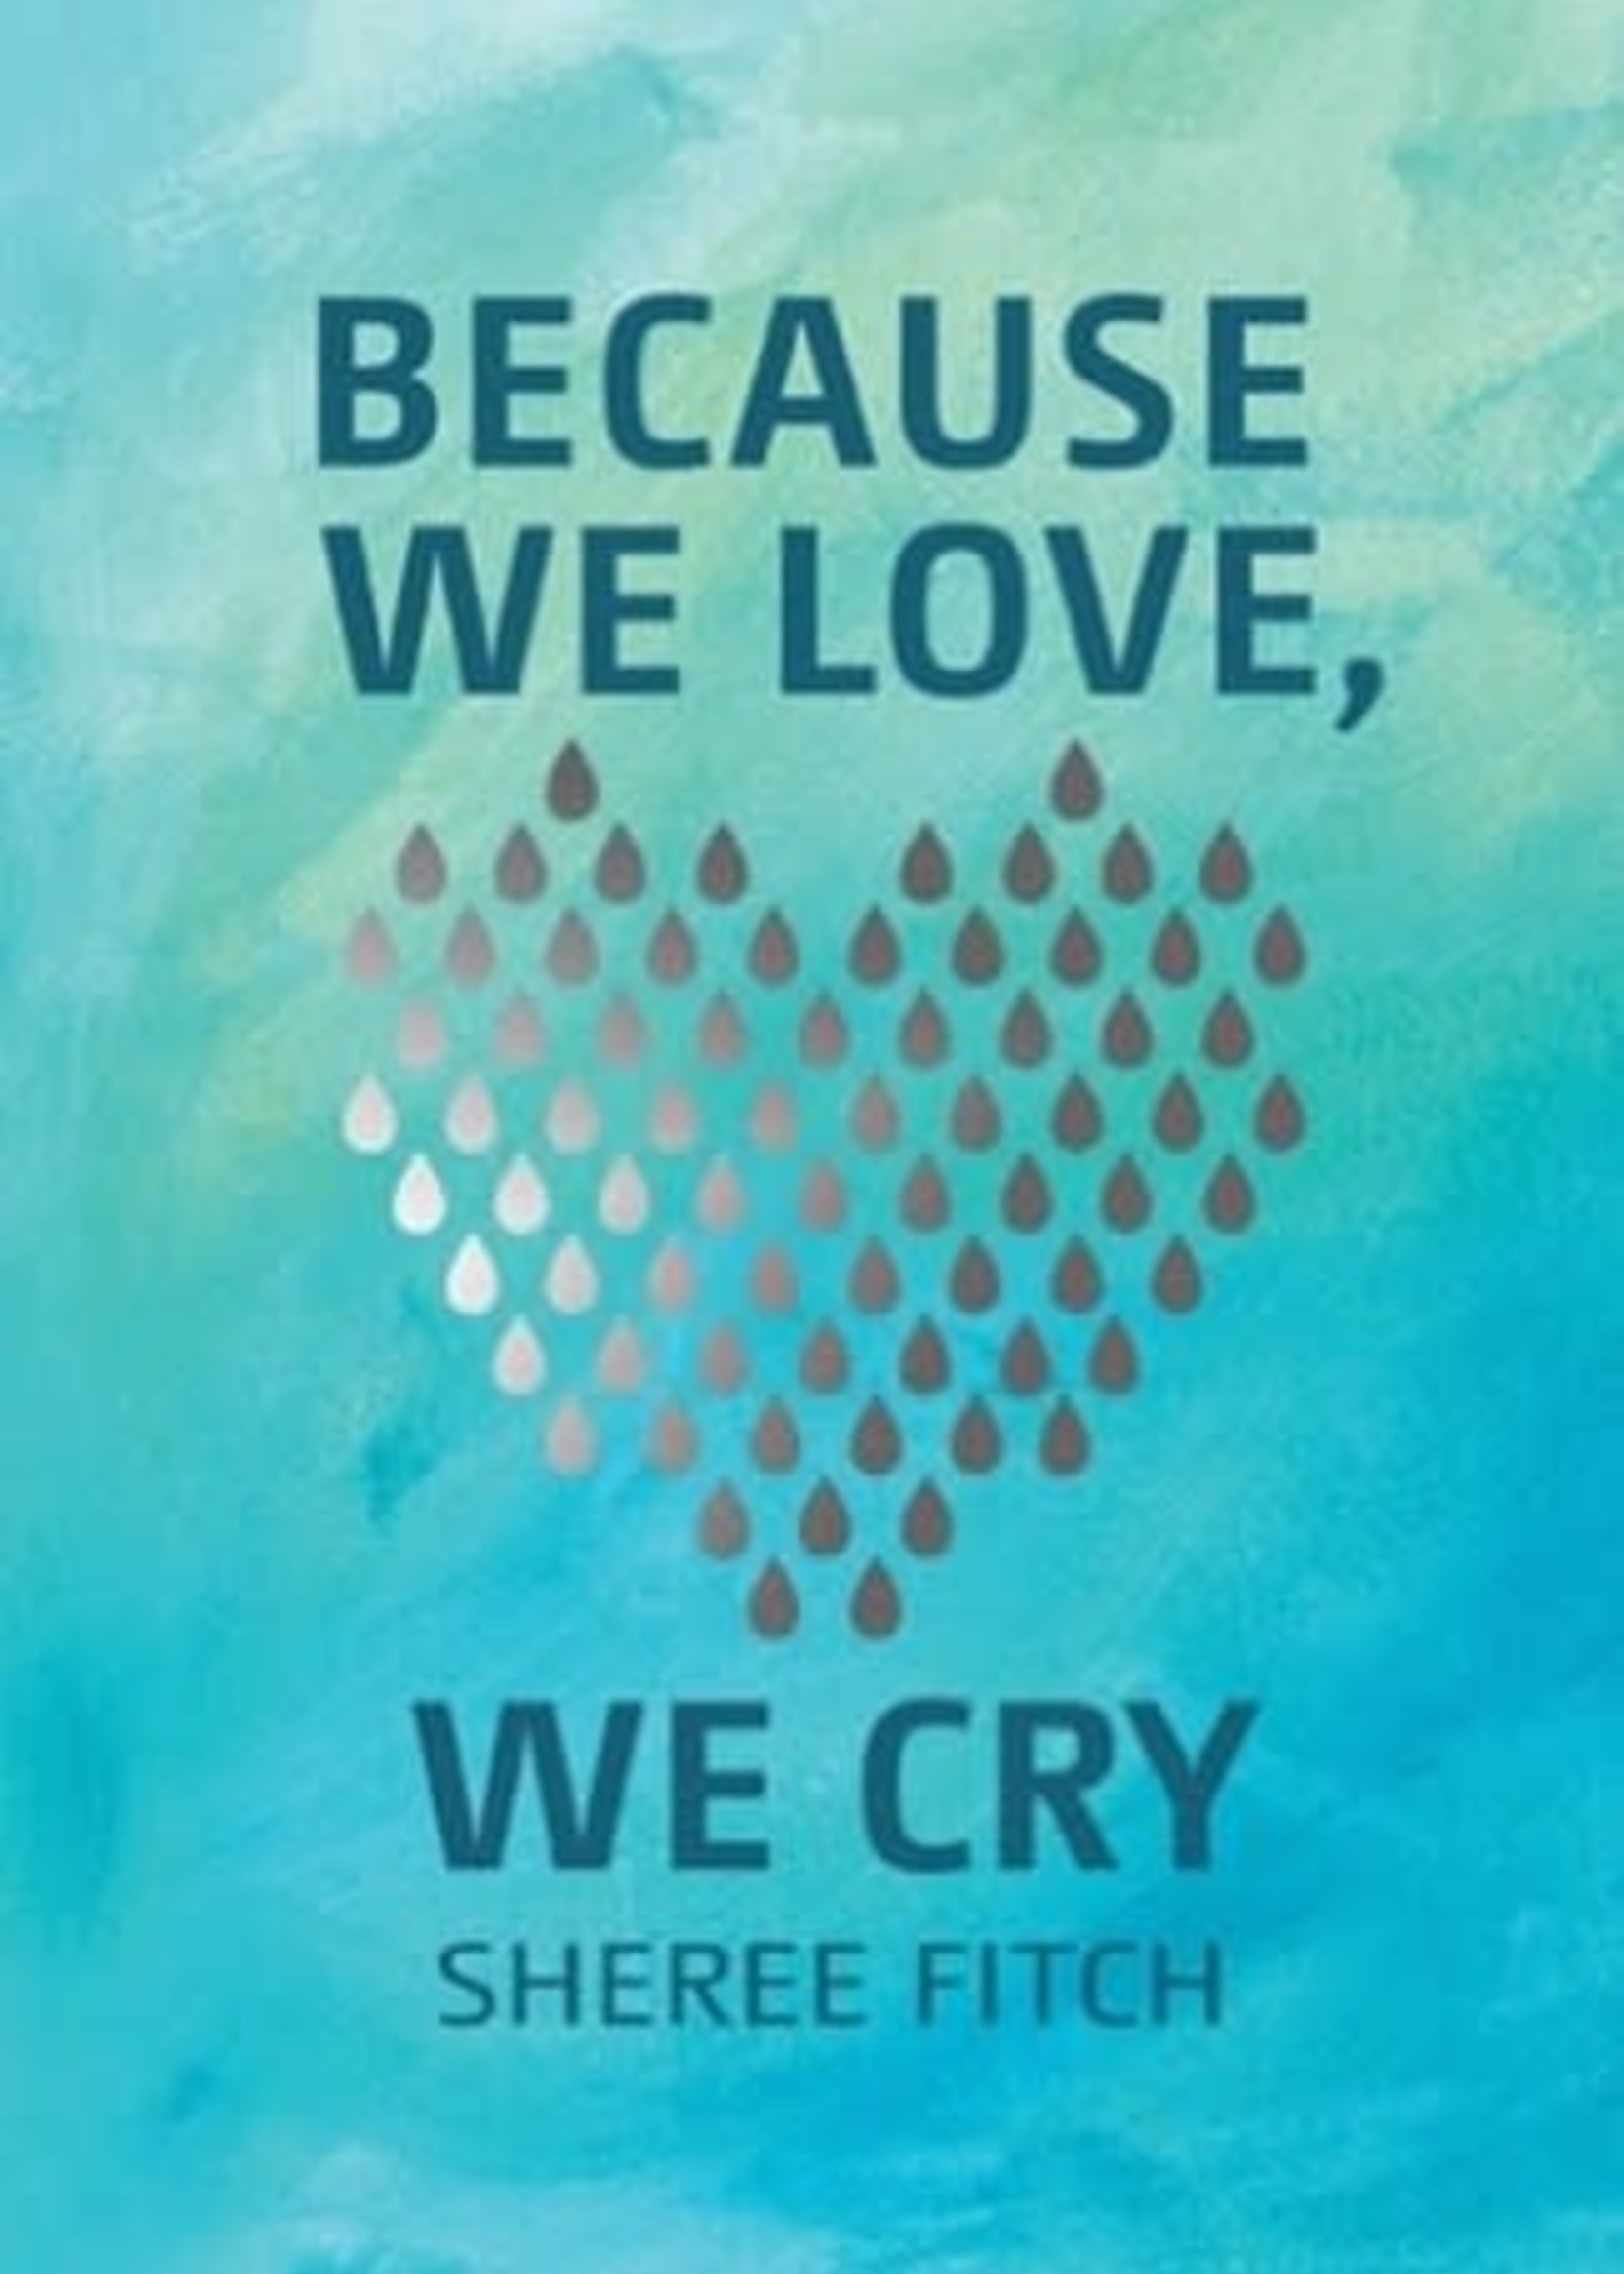 Because We Love, We Cry by Sheree Fitch